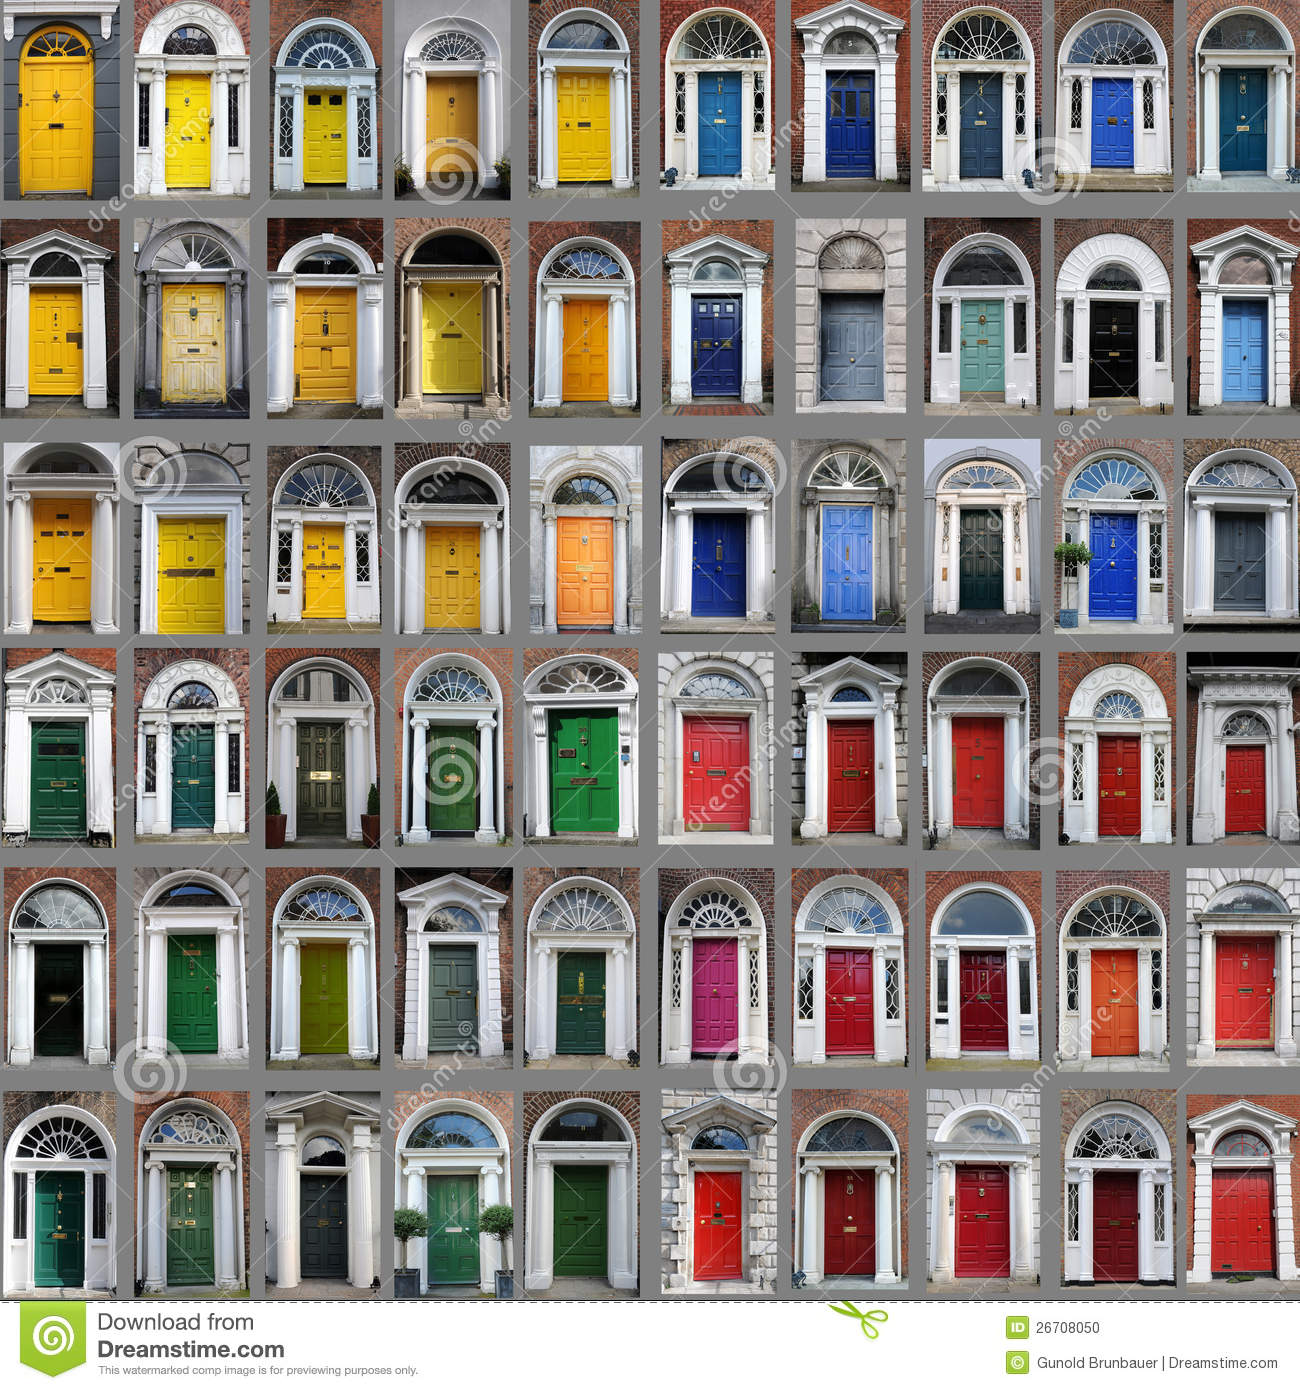 Dublin doors & Dublin doors stock photo. Image of craftsmanship colors - 26708050 pezcame.com